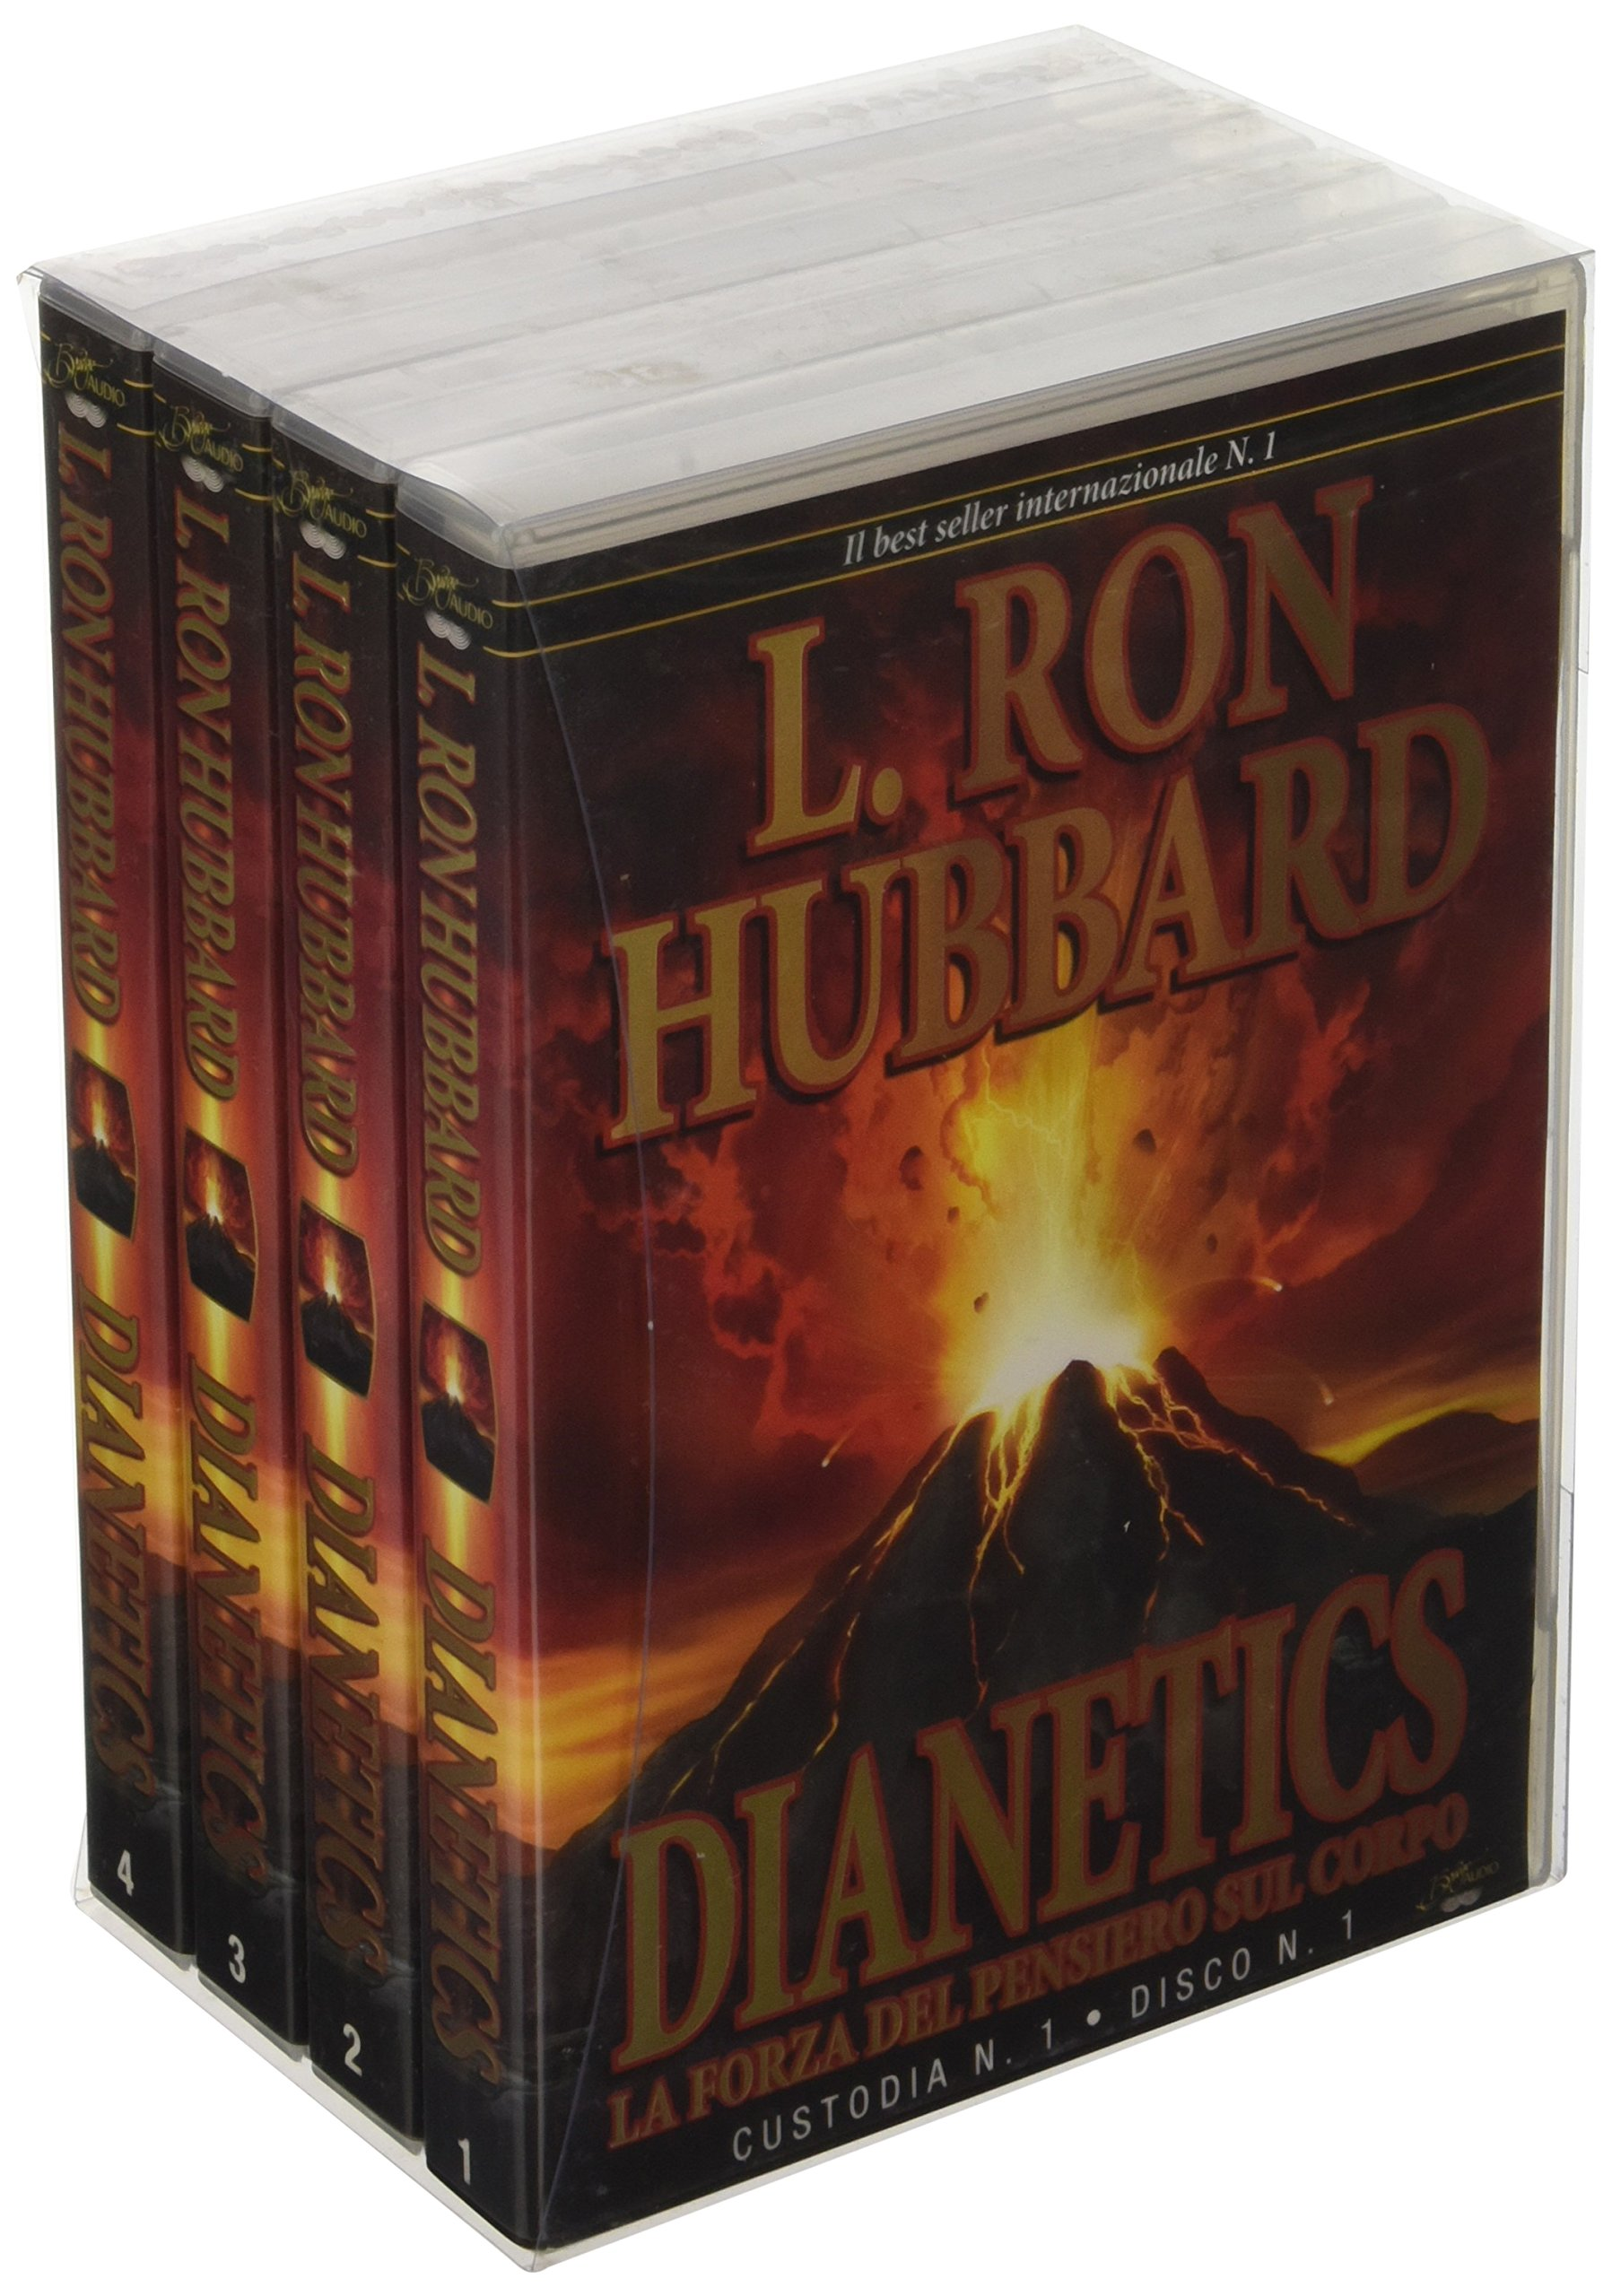 Download Dianetics: The Modern Science Of Mental Health (Italian Edition) pdf